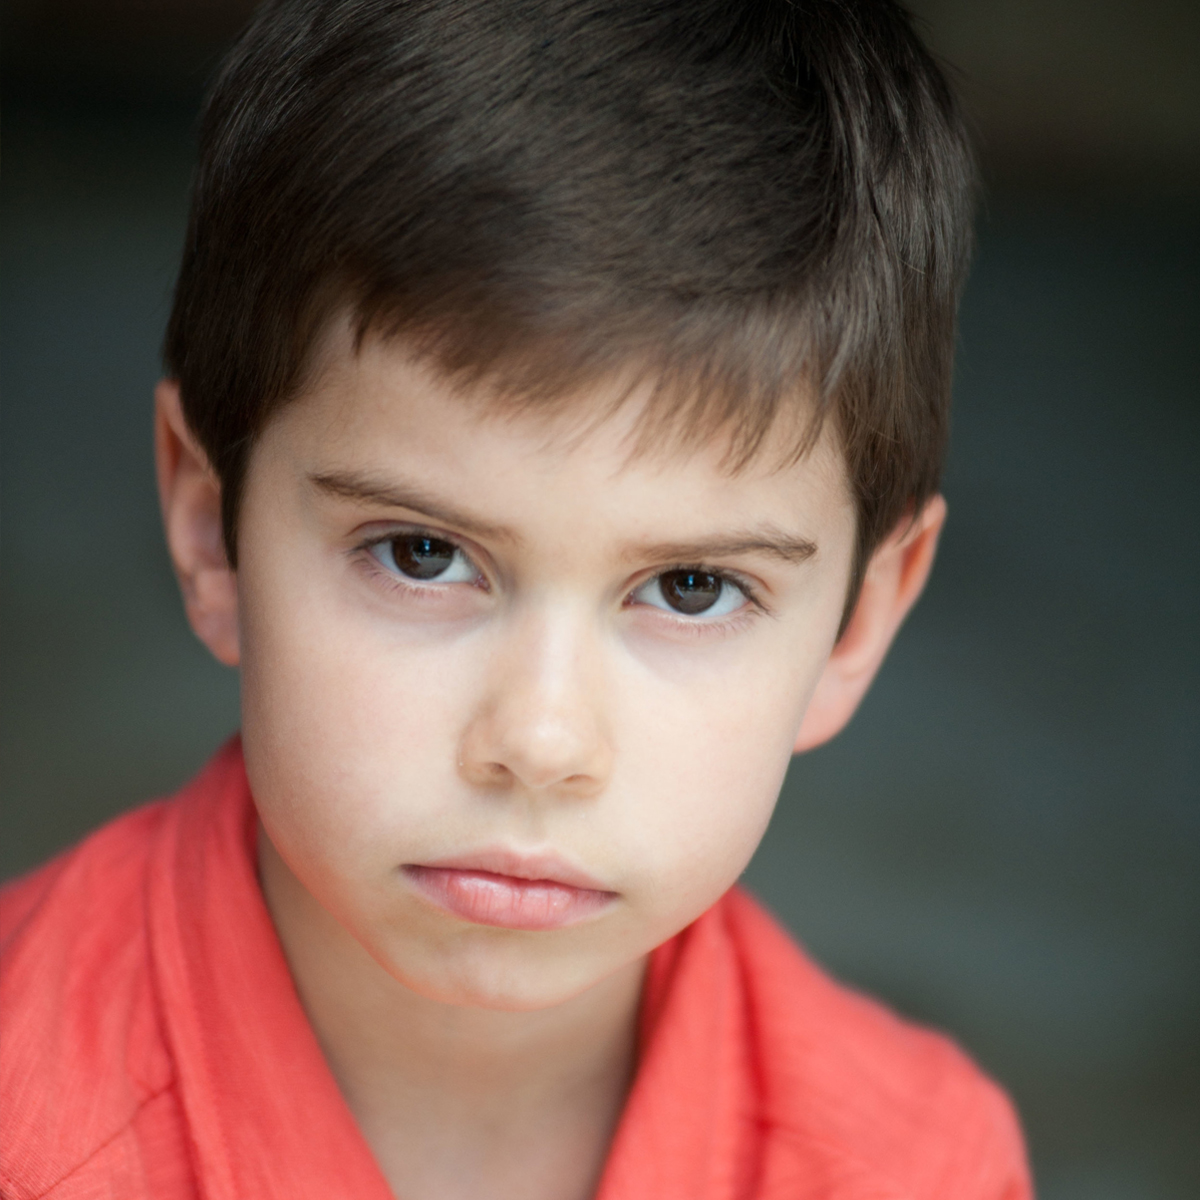 """David - Samuel Goergen (better known as Sammy) is an 8 year-old Atlanta based actor. He entered the TV/film industry, as a movie extra, at the end of 2014. After several extra roles, Samuel was determined to """"speak"""" and not be just background. Days later, while filming as an extra on the film, In Dubious Battle, Director James Franco gave Samuel an on the spot line, fueling Samuel's love of acting. Since then, Samuel has pursued acting in a focused way, landing him supporting roles on highly rated TV shows including The Vampire Diaries and The Carbonaro Effect, as well as starring in short films, to include The Staying Kind, opposite Rachel Hendrix. He's enrolled in acting classes at Studio 27, in Tyrone, GA, focusing on all aspects of the film industry."""